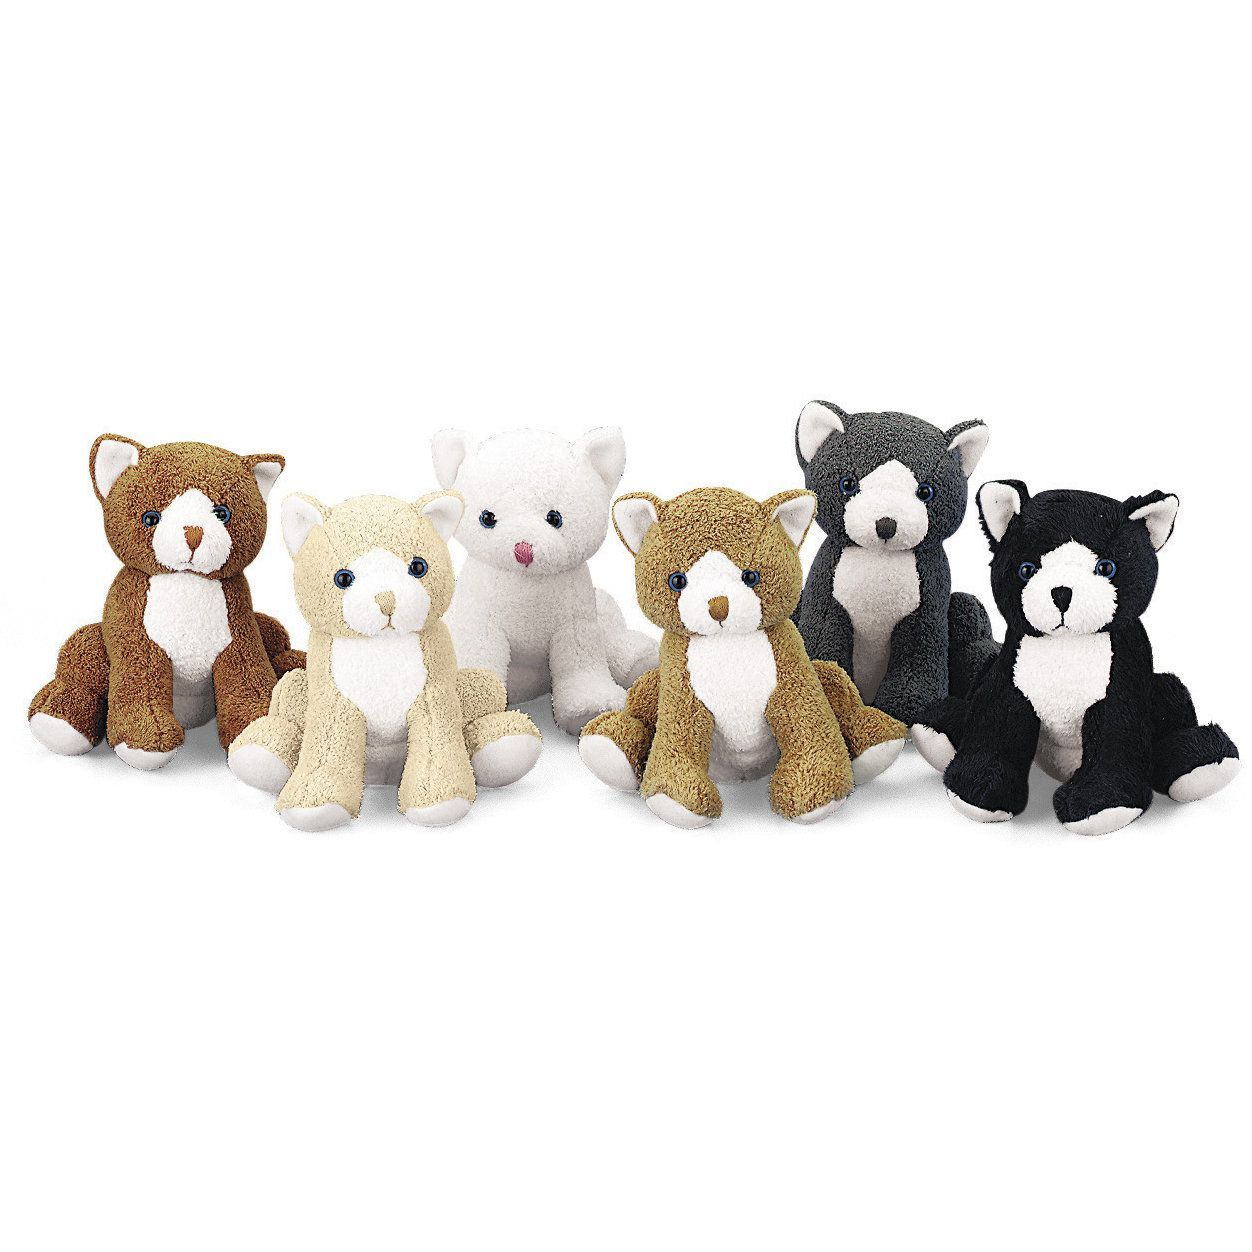 Realistic Plush Cats (12) Cat plush toy, Cat birthday